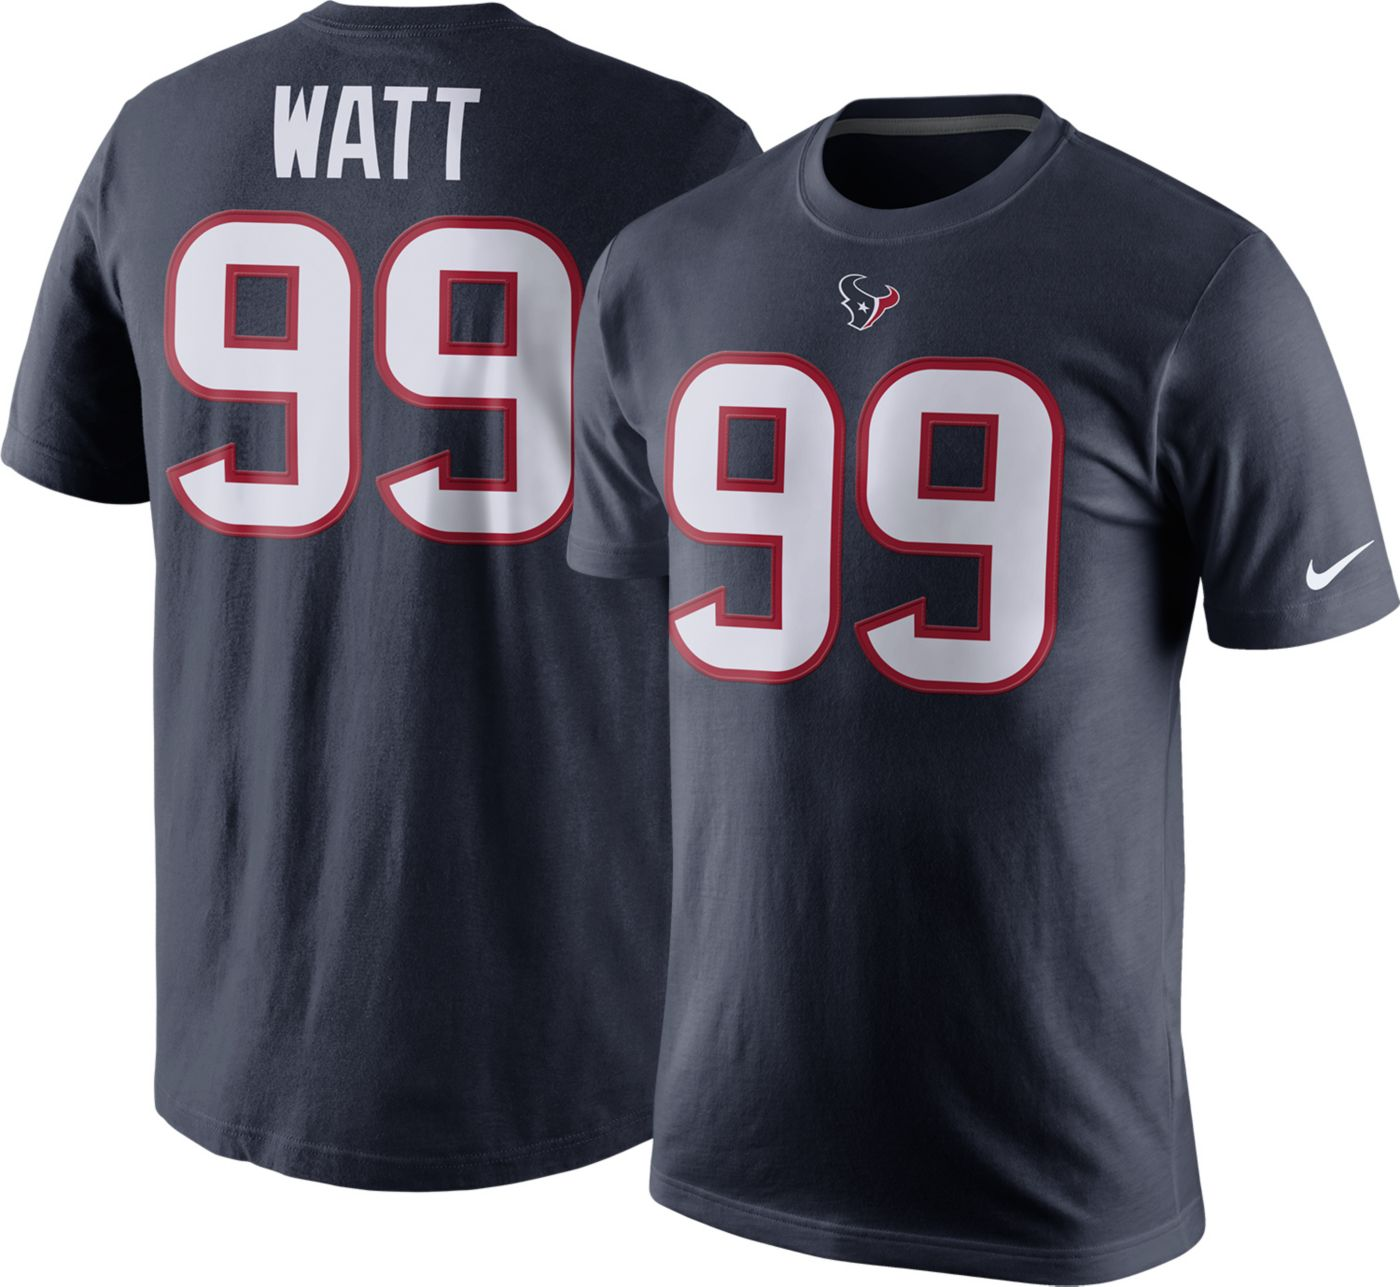 Nike Men's Houston Texans J.J. Watt #99 Pride Navy T-Shirt